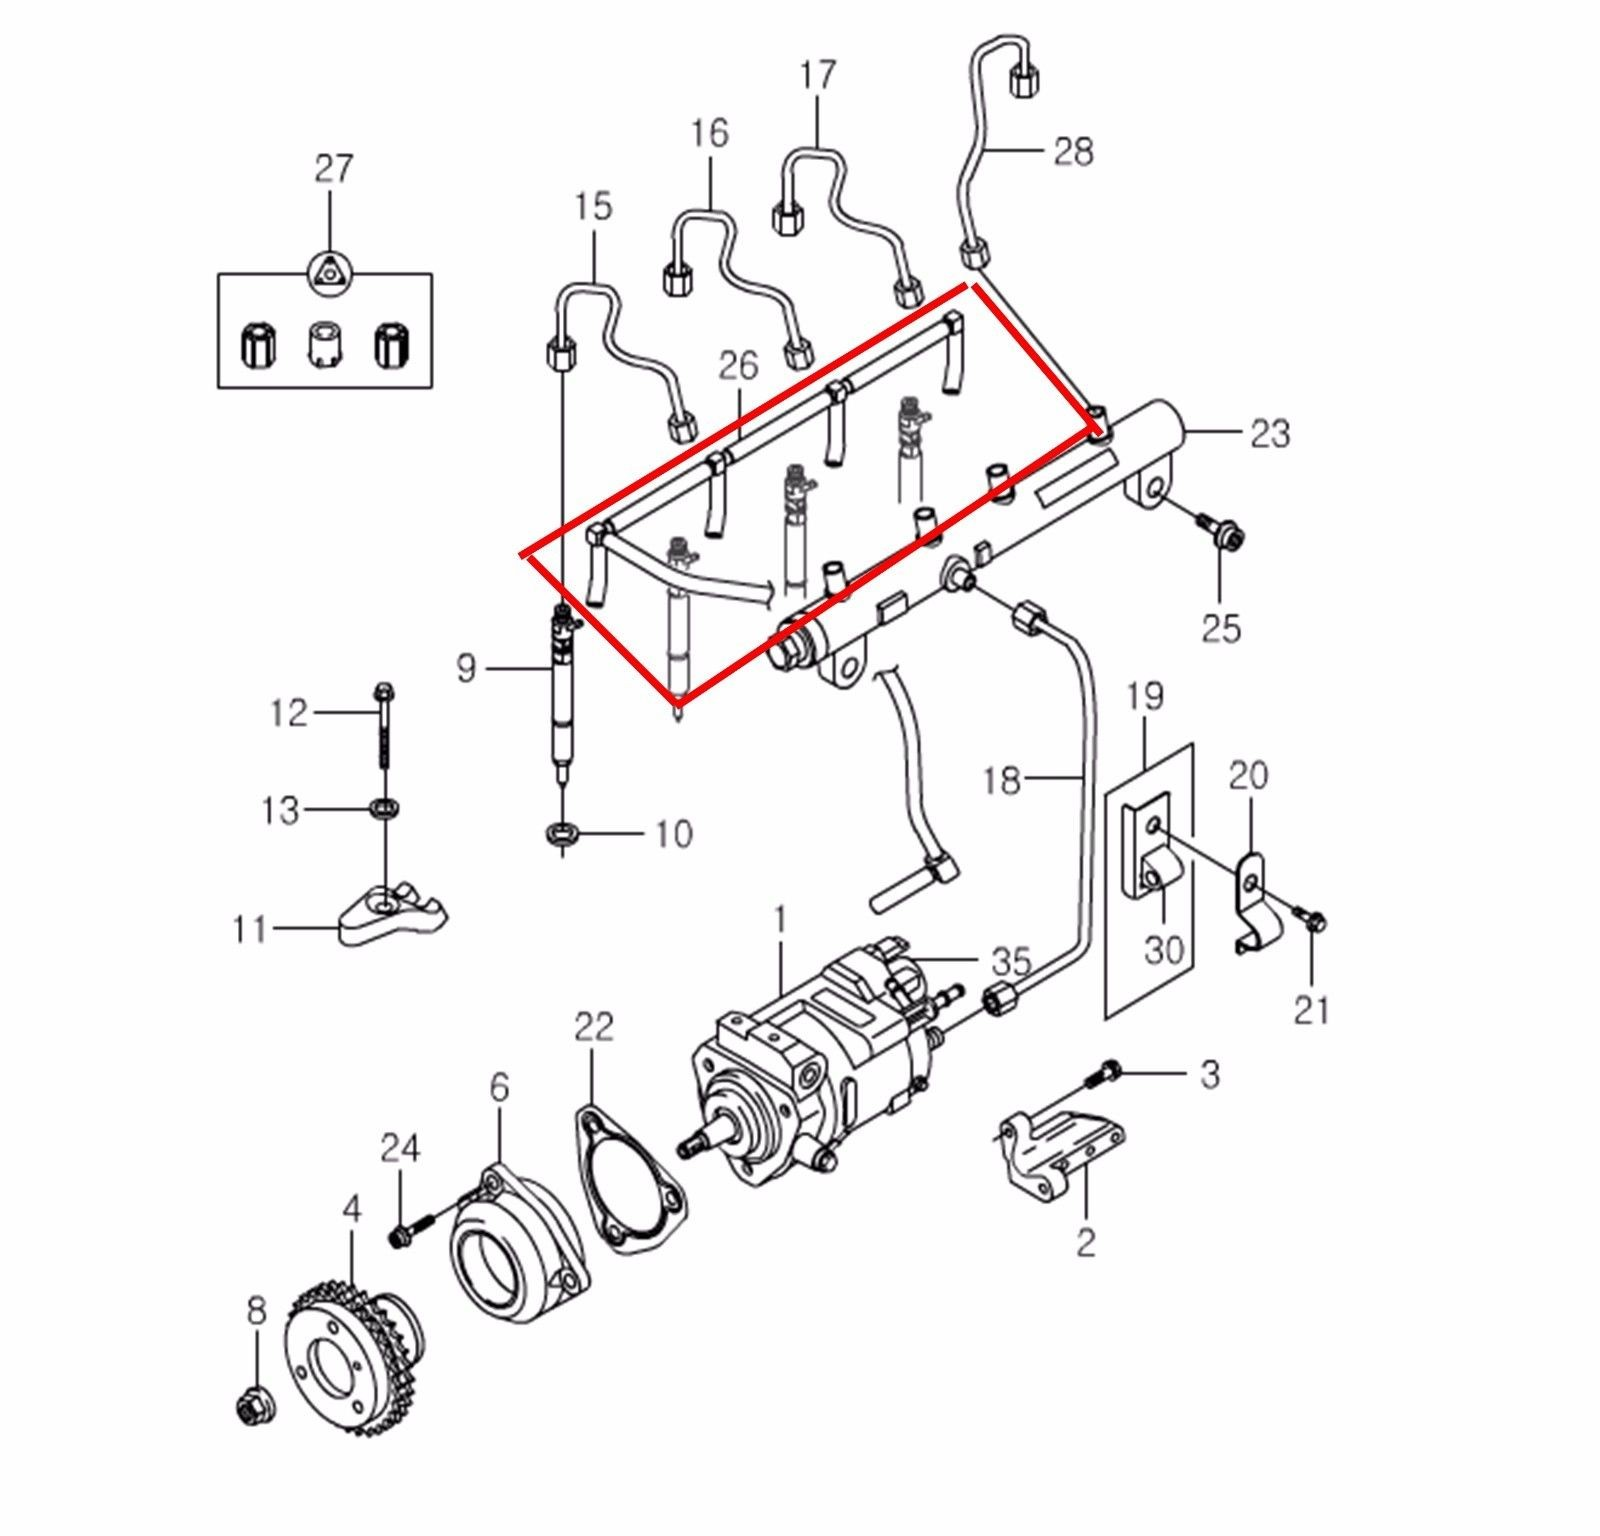 Car Fuel Tank Diagram Oem Fuel Return Tube Hose Ssangyong Actyon Sports Kyron D20 2 0xdi Of Car Fuel Tank Diagram